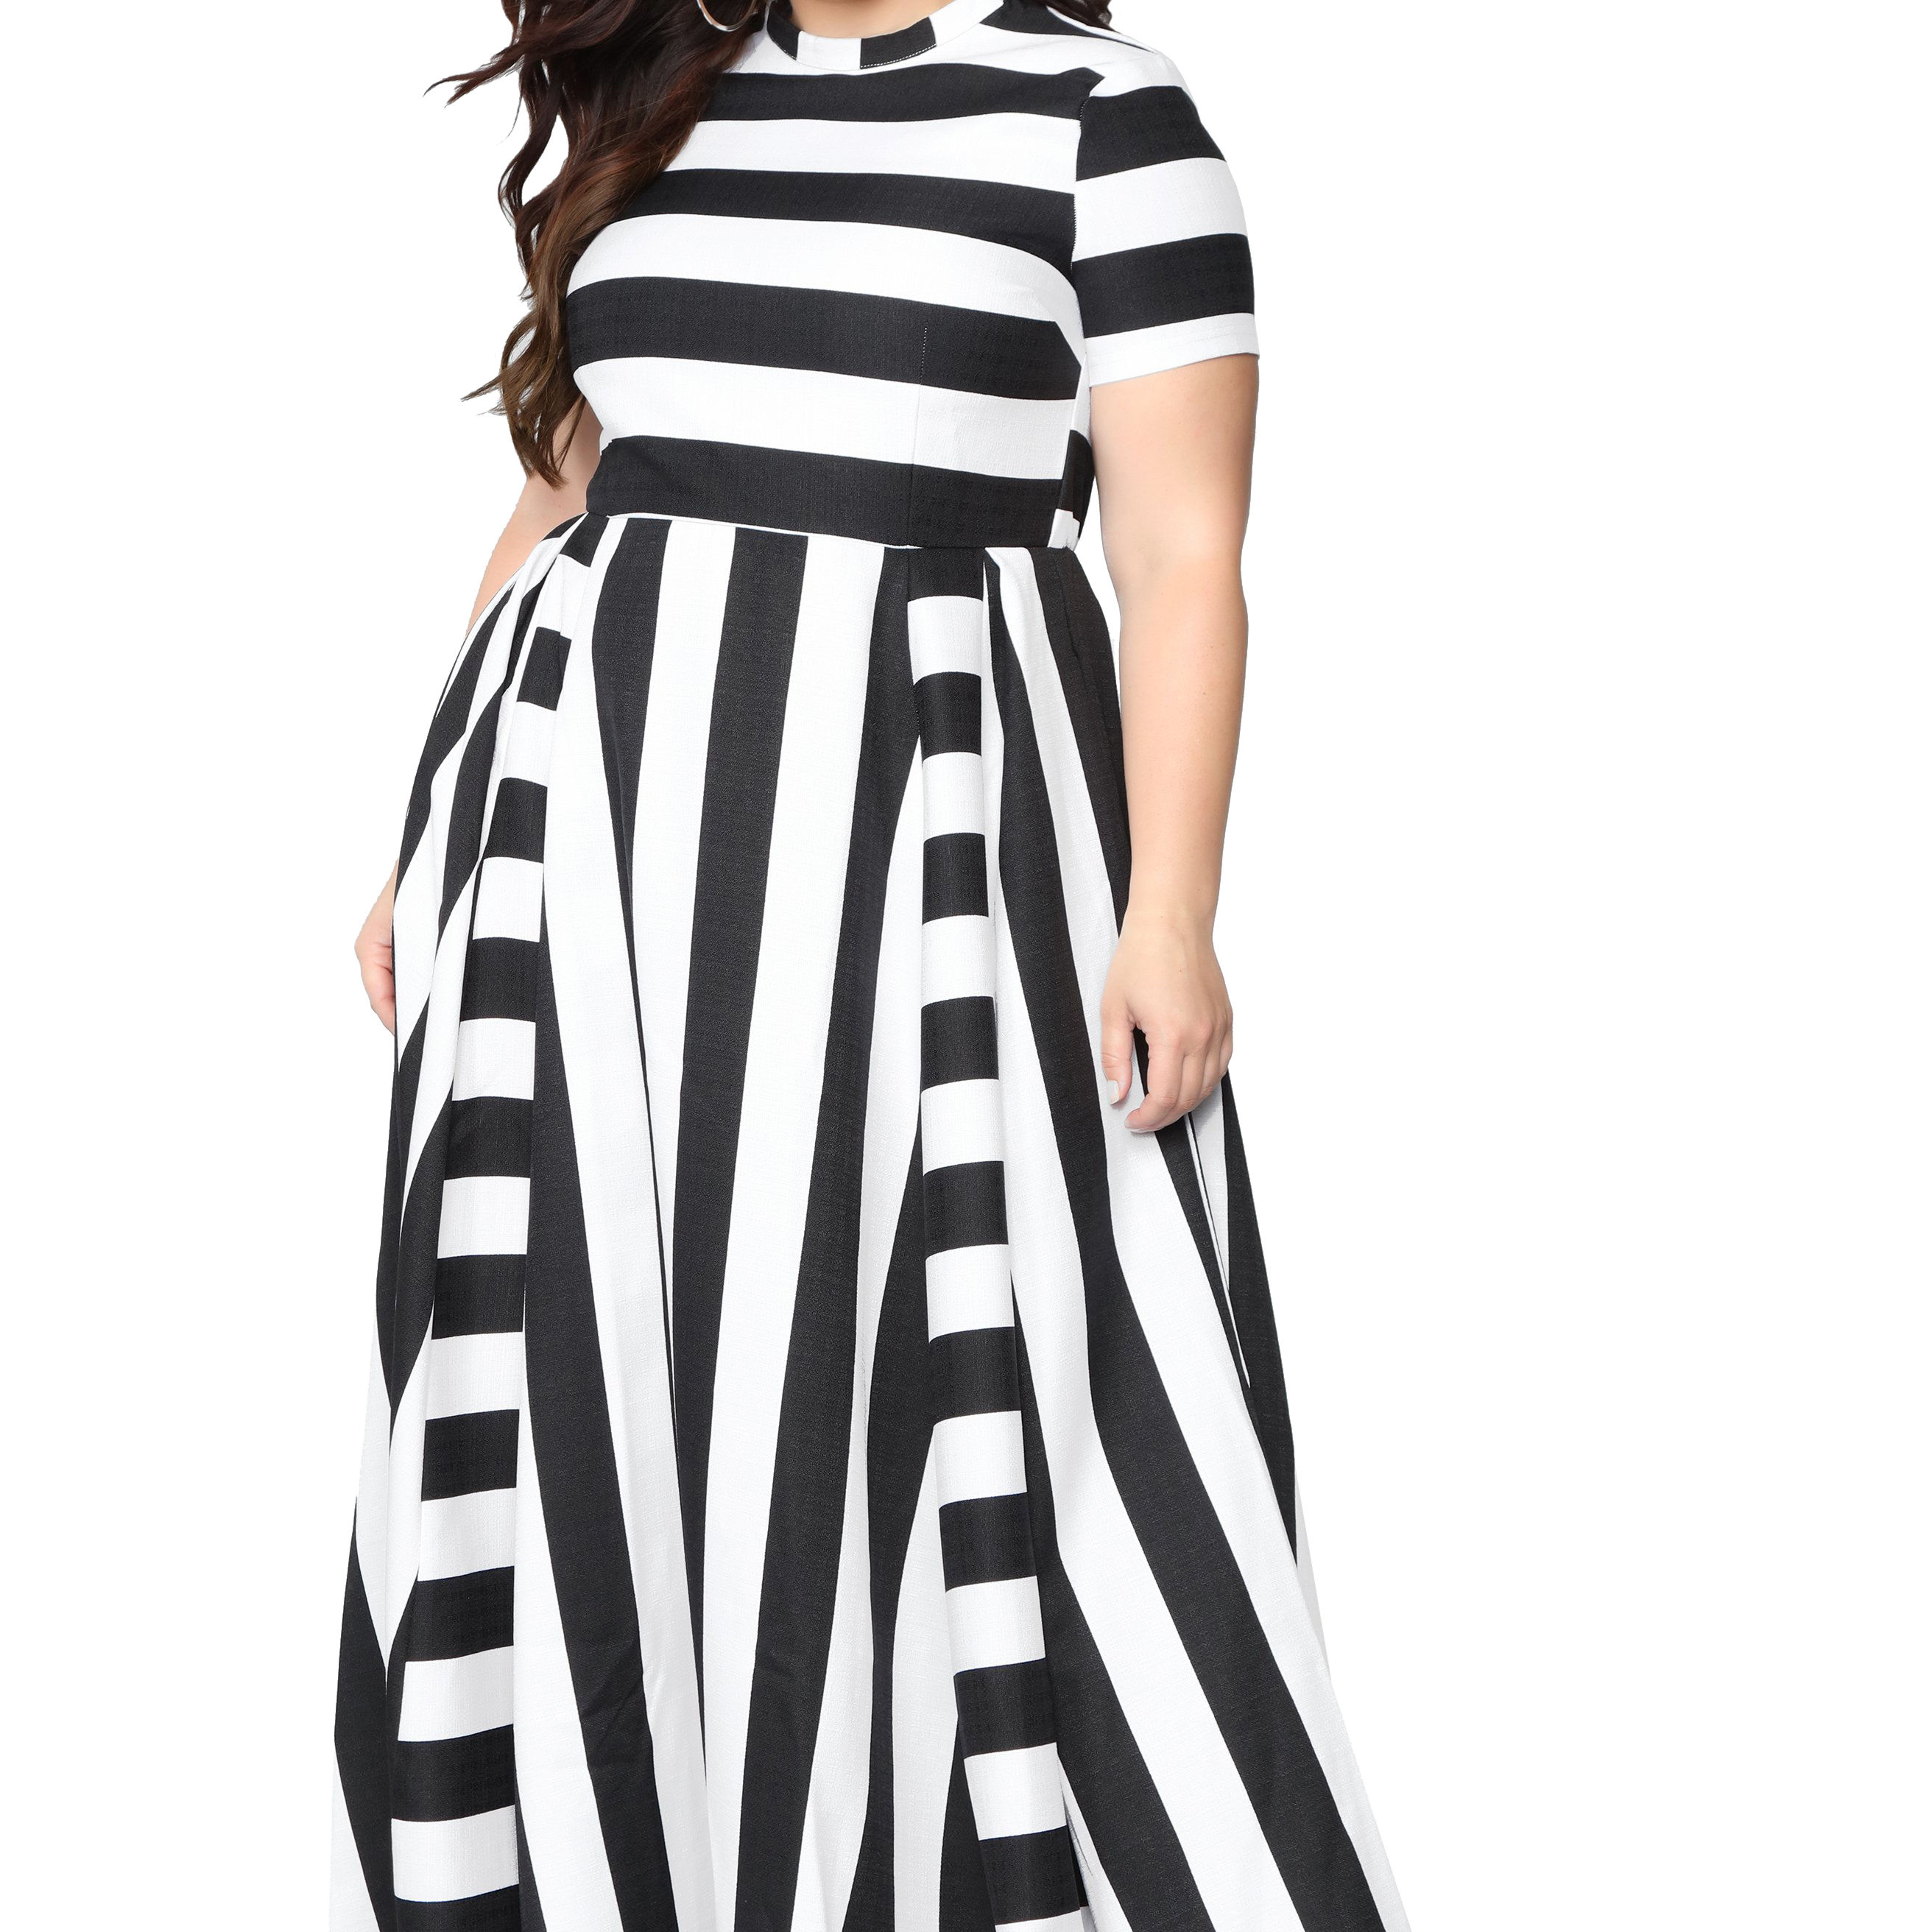 Summer European and American sexy fashion women's round neck dress plus size